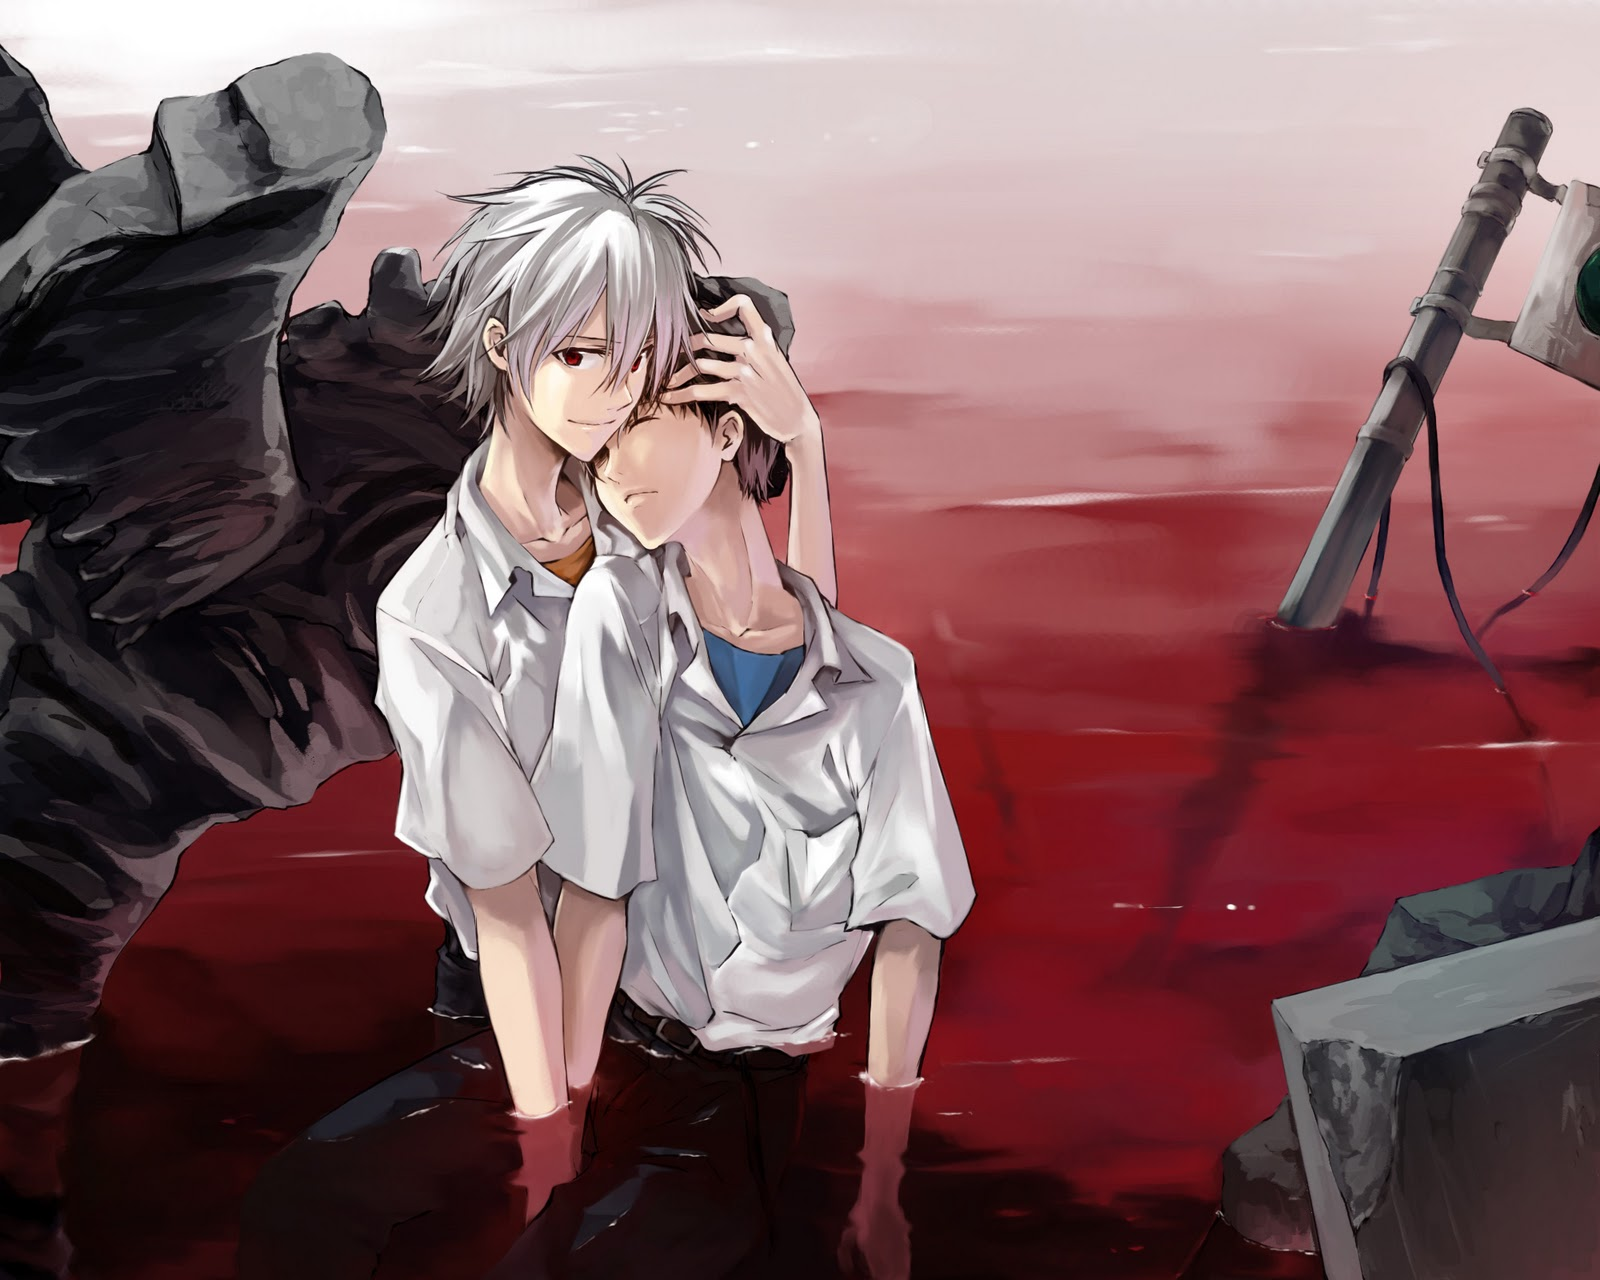 Kaworu and Shinji in pool of blood Neon Genesis Evangelion wallpaper - Ikari Shinji/Nagisa Kaworu neon-genesis-evangelion-yaoi Yaoi desktop wallpapers Nagisa Kaworu KawoShin Ikari Shinji Blood - fanarts on yaoi-online.com